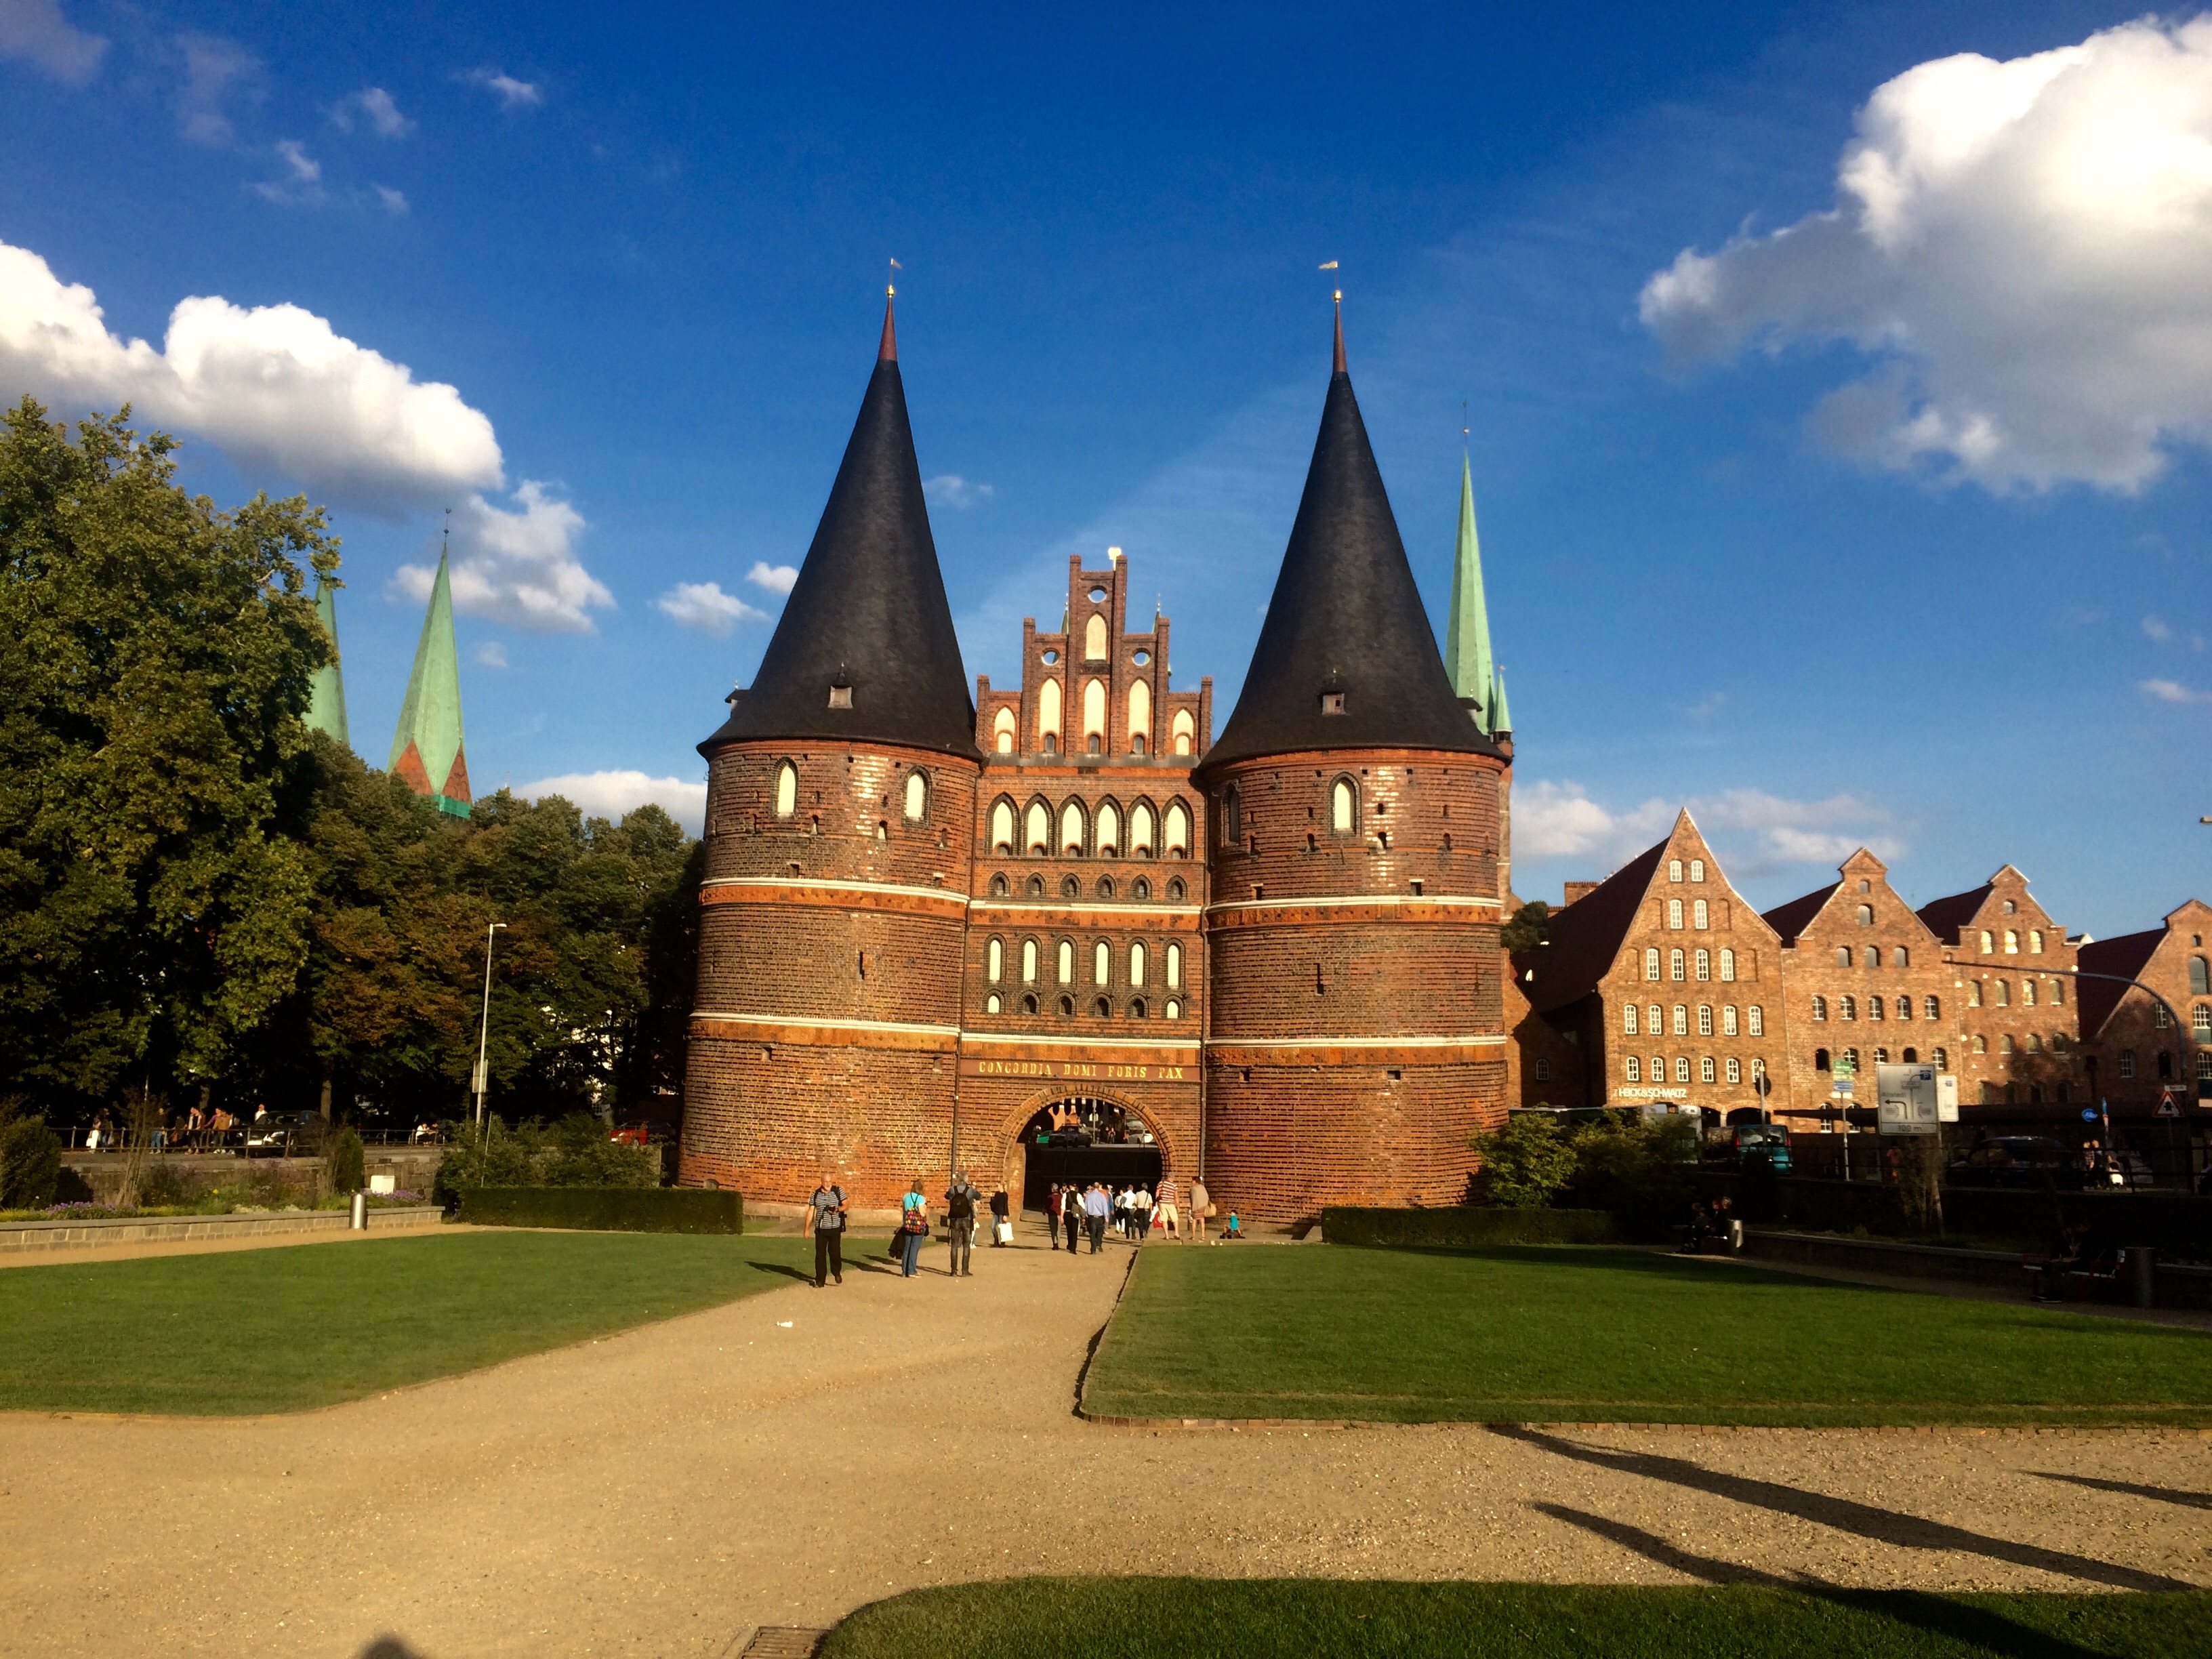 Holsten Gate in Lübeck, Germany